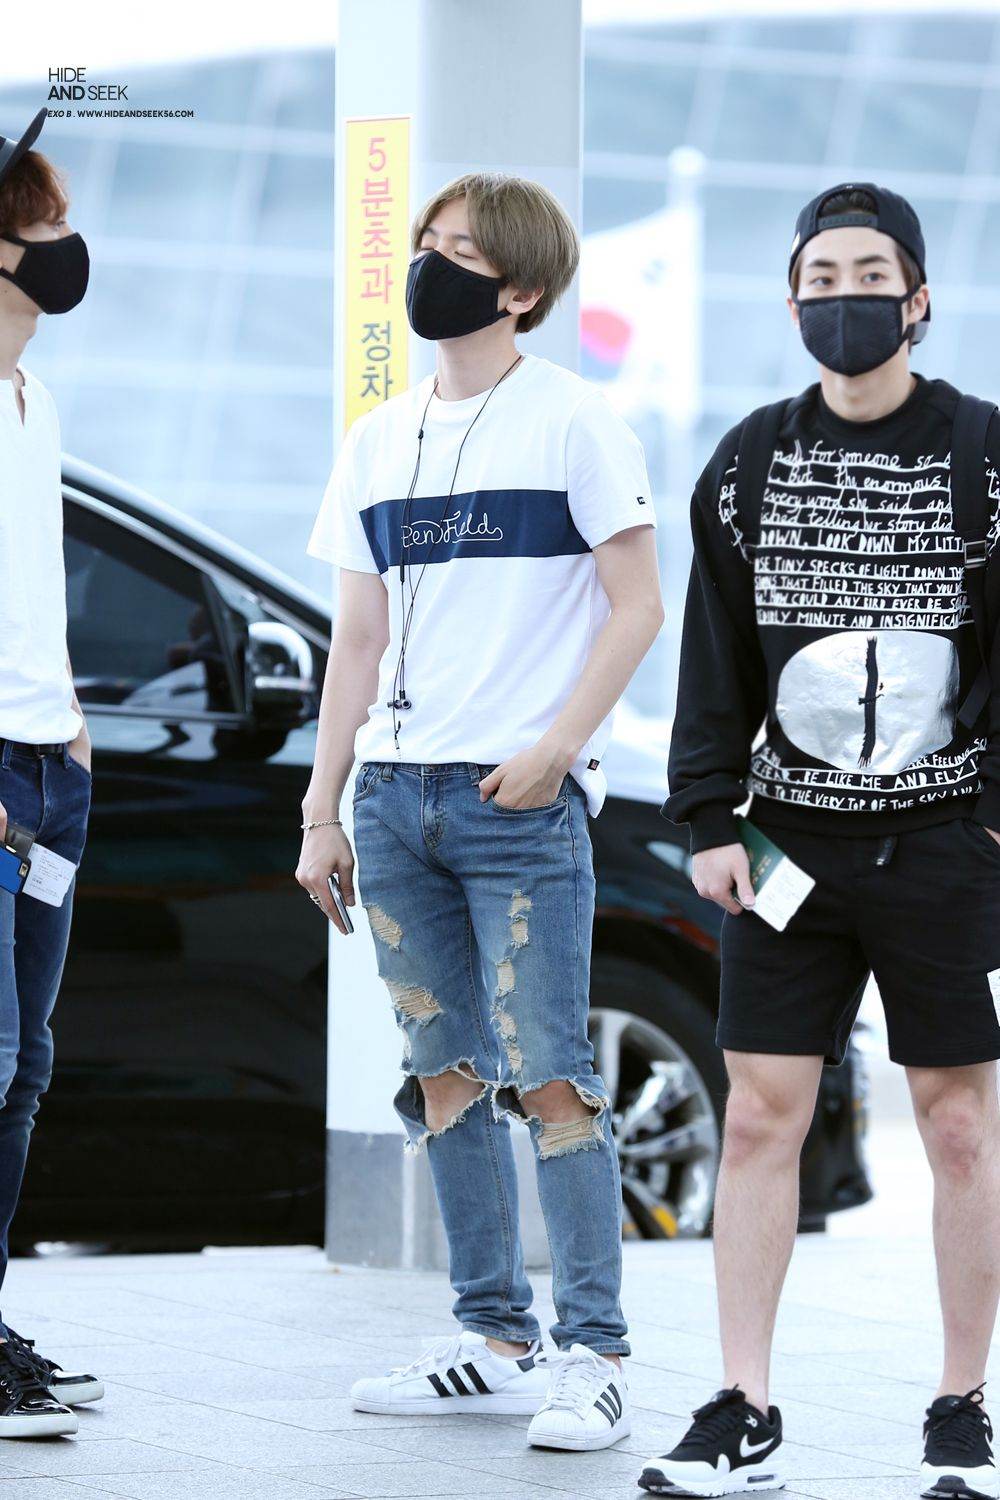 Exo Baekhyun N Xiumin Do They Shave Or Do They Not Grow Leg Hair Xd Exo Fashion Exo Airport Fashion Exo Baekhyun